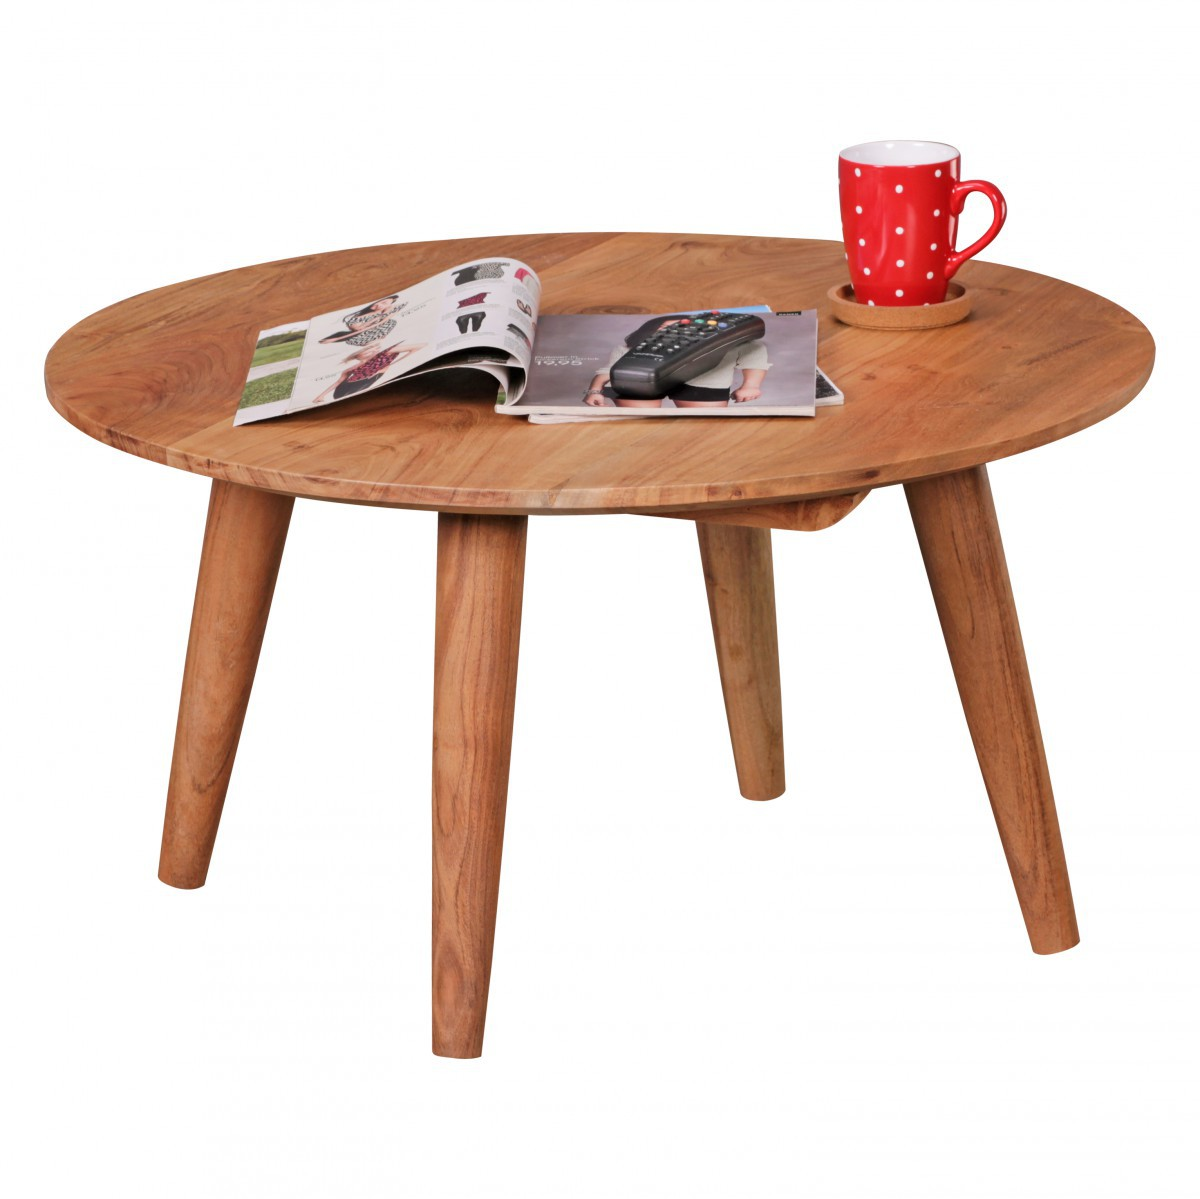 Finebuy table basse en bois massif acacia table basse ronde 75 x 40 cm ferme - Table basse teck massif ...